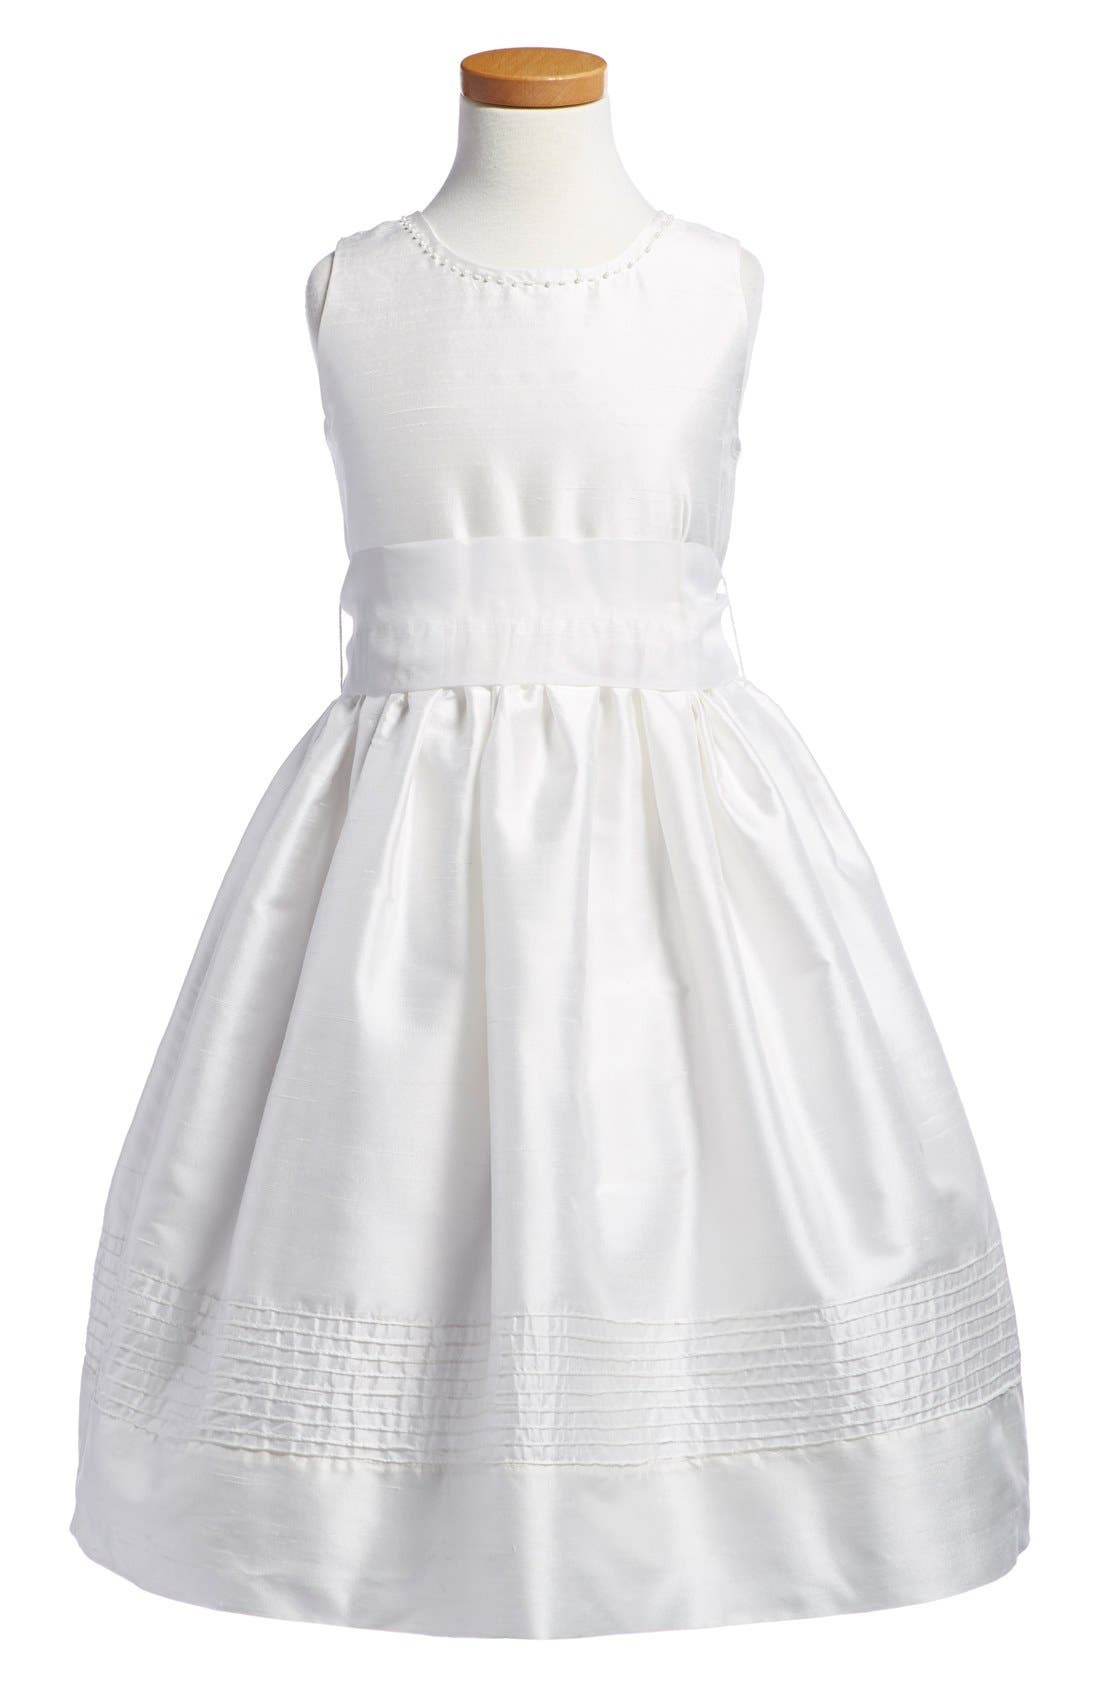 Main Image - Isabel Garreton 'Melody' Sleeveless Dress (Little Girls & Big Girls)